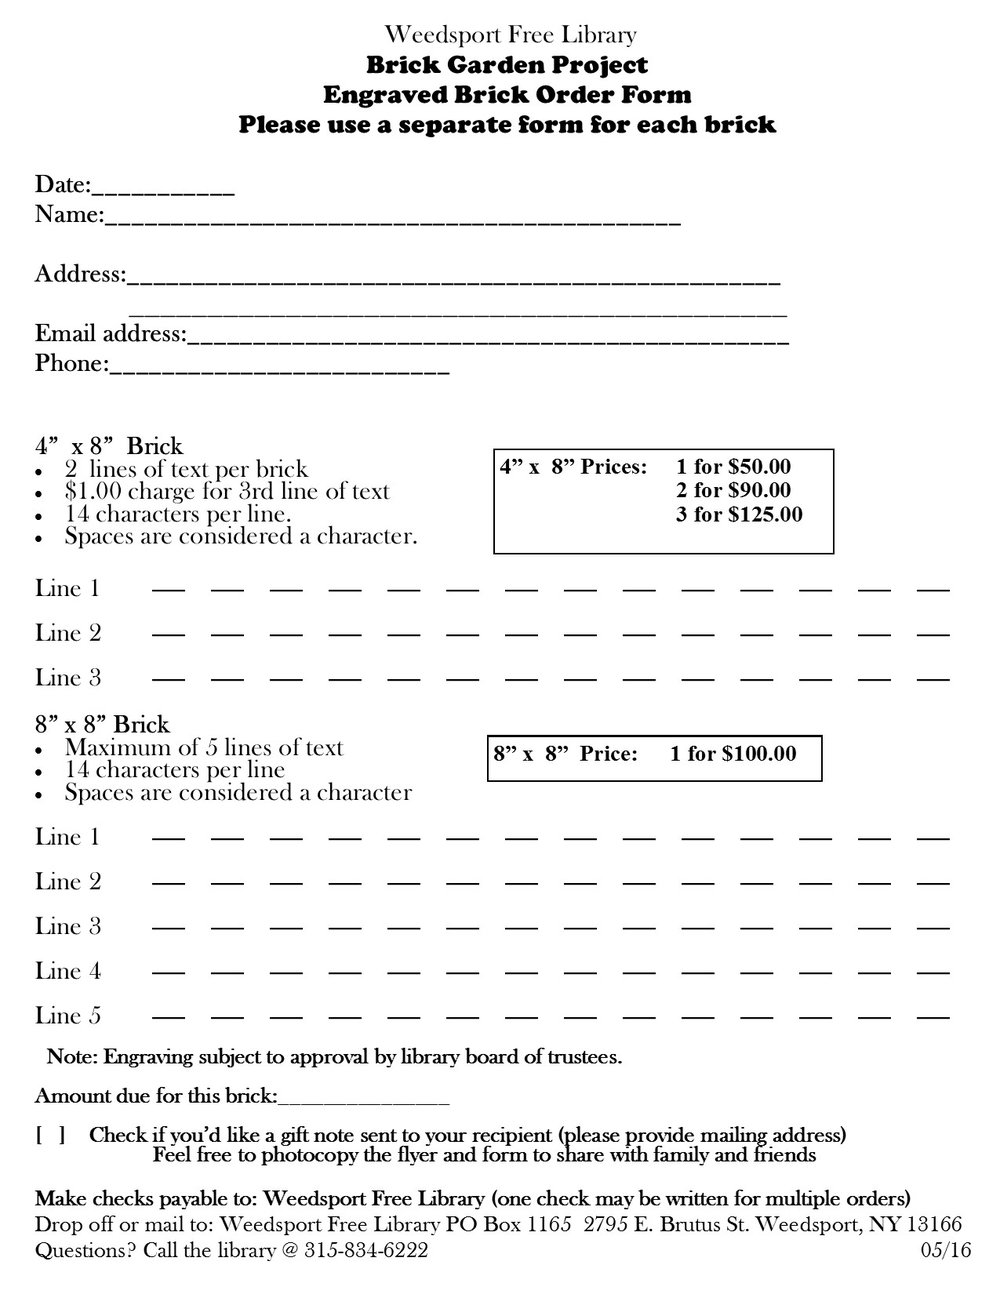 Click on form to print